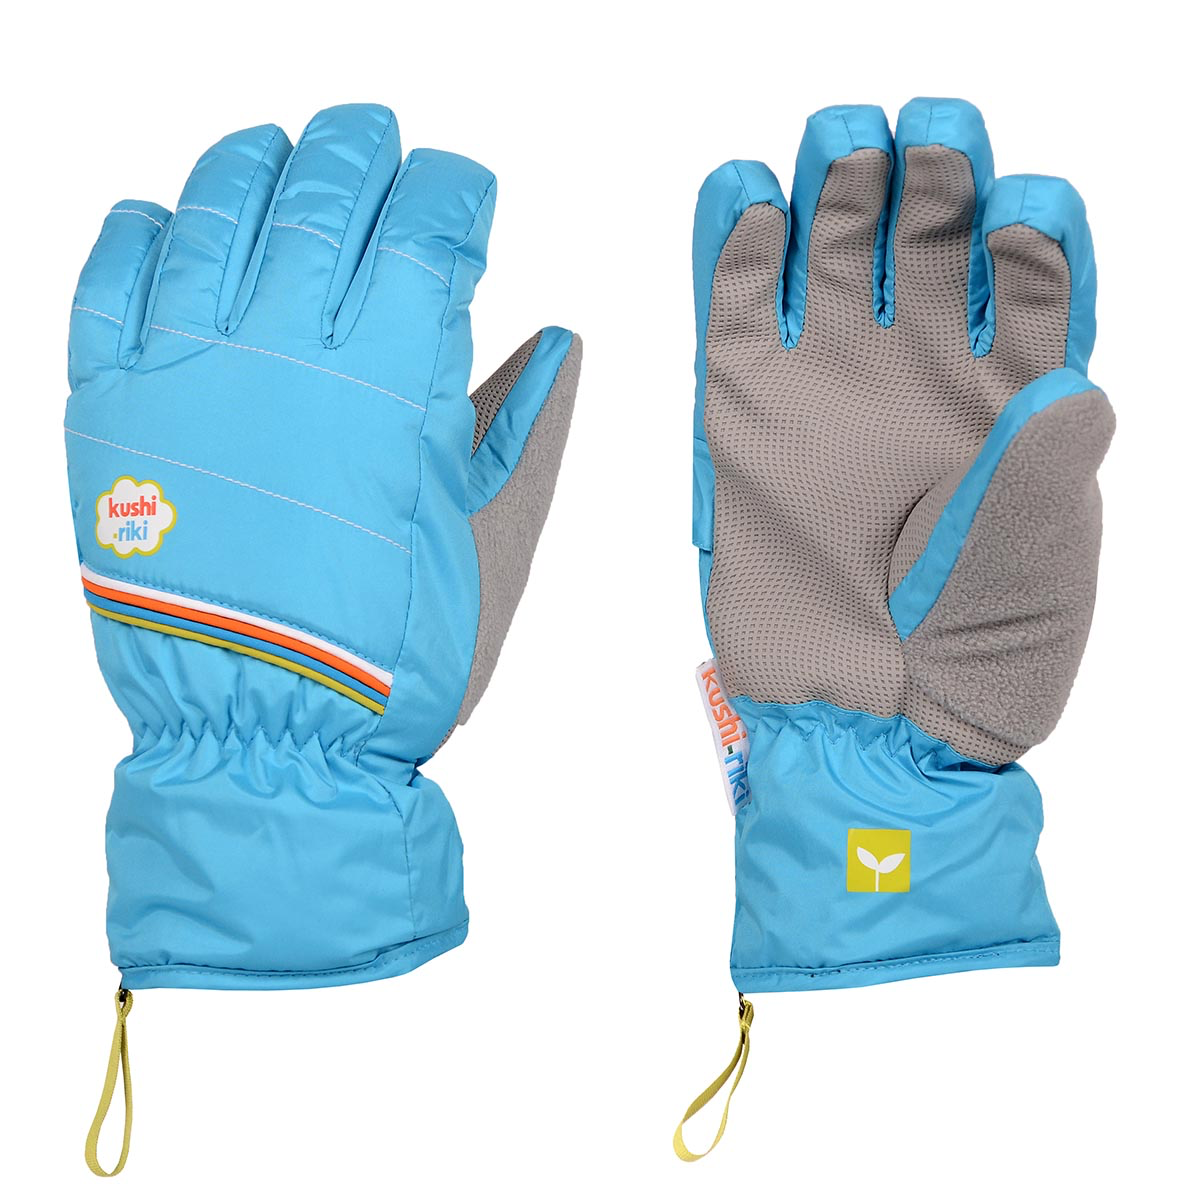 Kushi-Riki Hope Glove - Sky